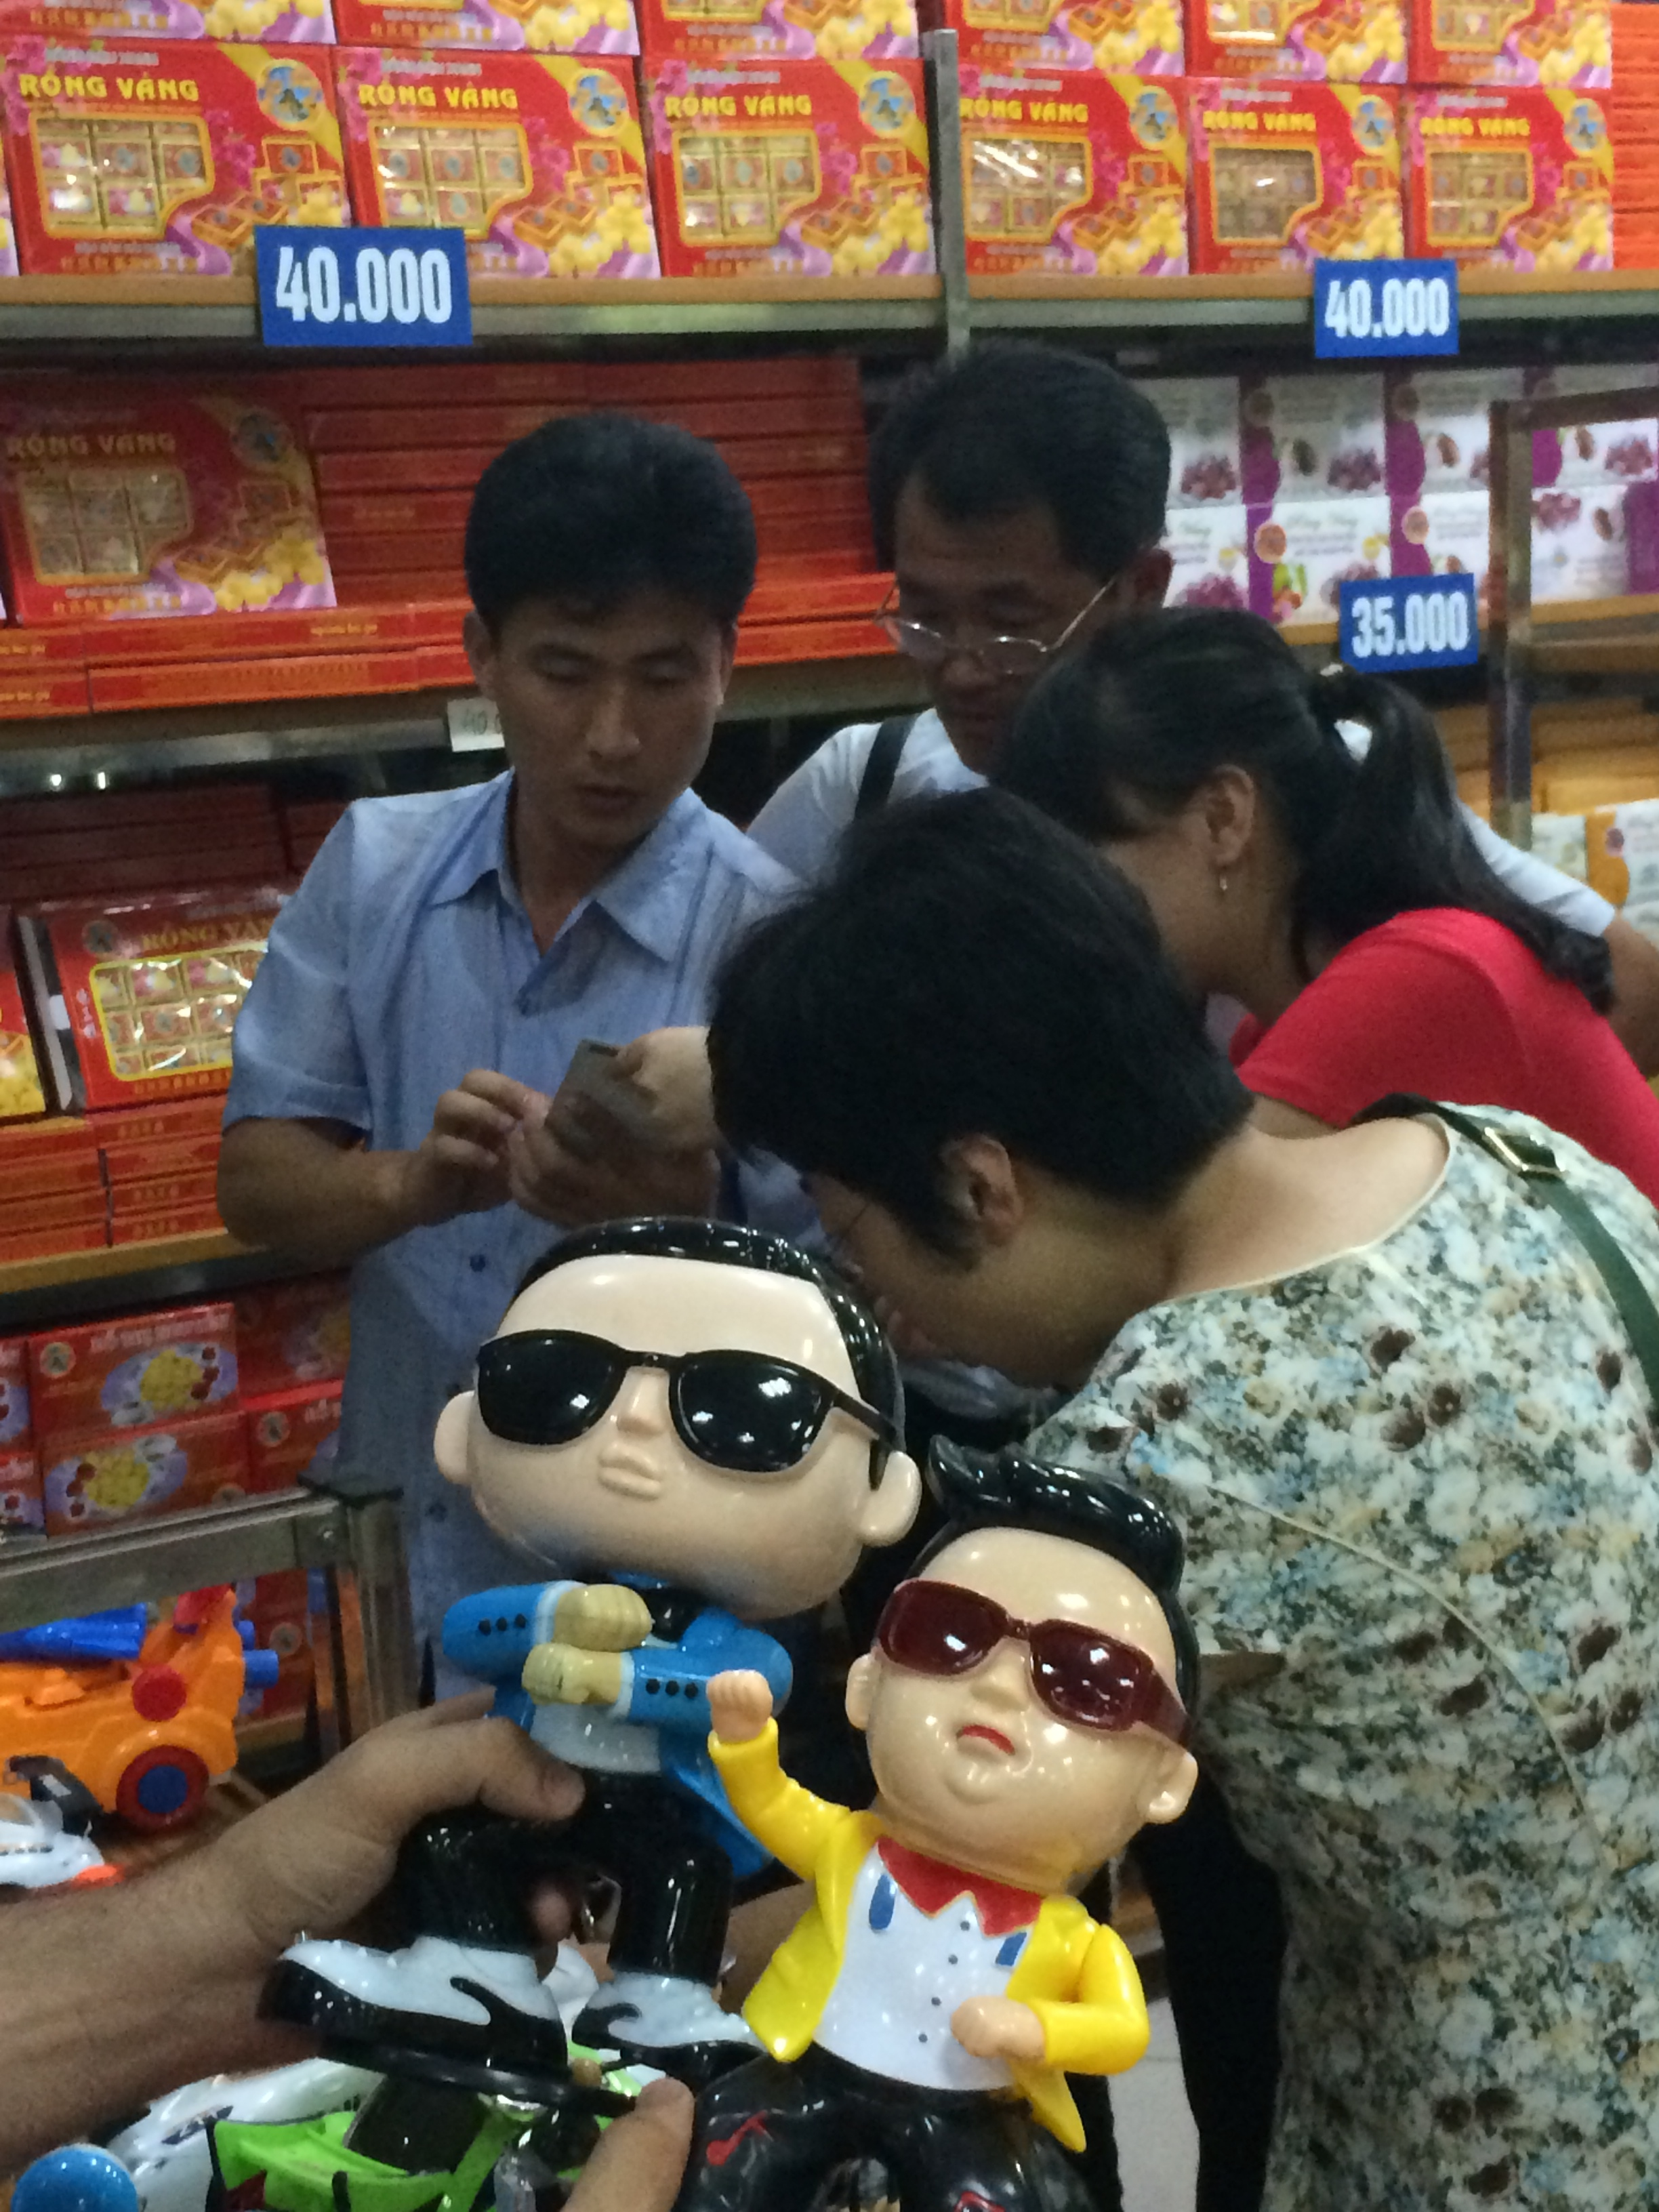 You can run but you can't hide (from Psy) in Vietnam.